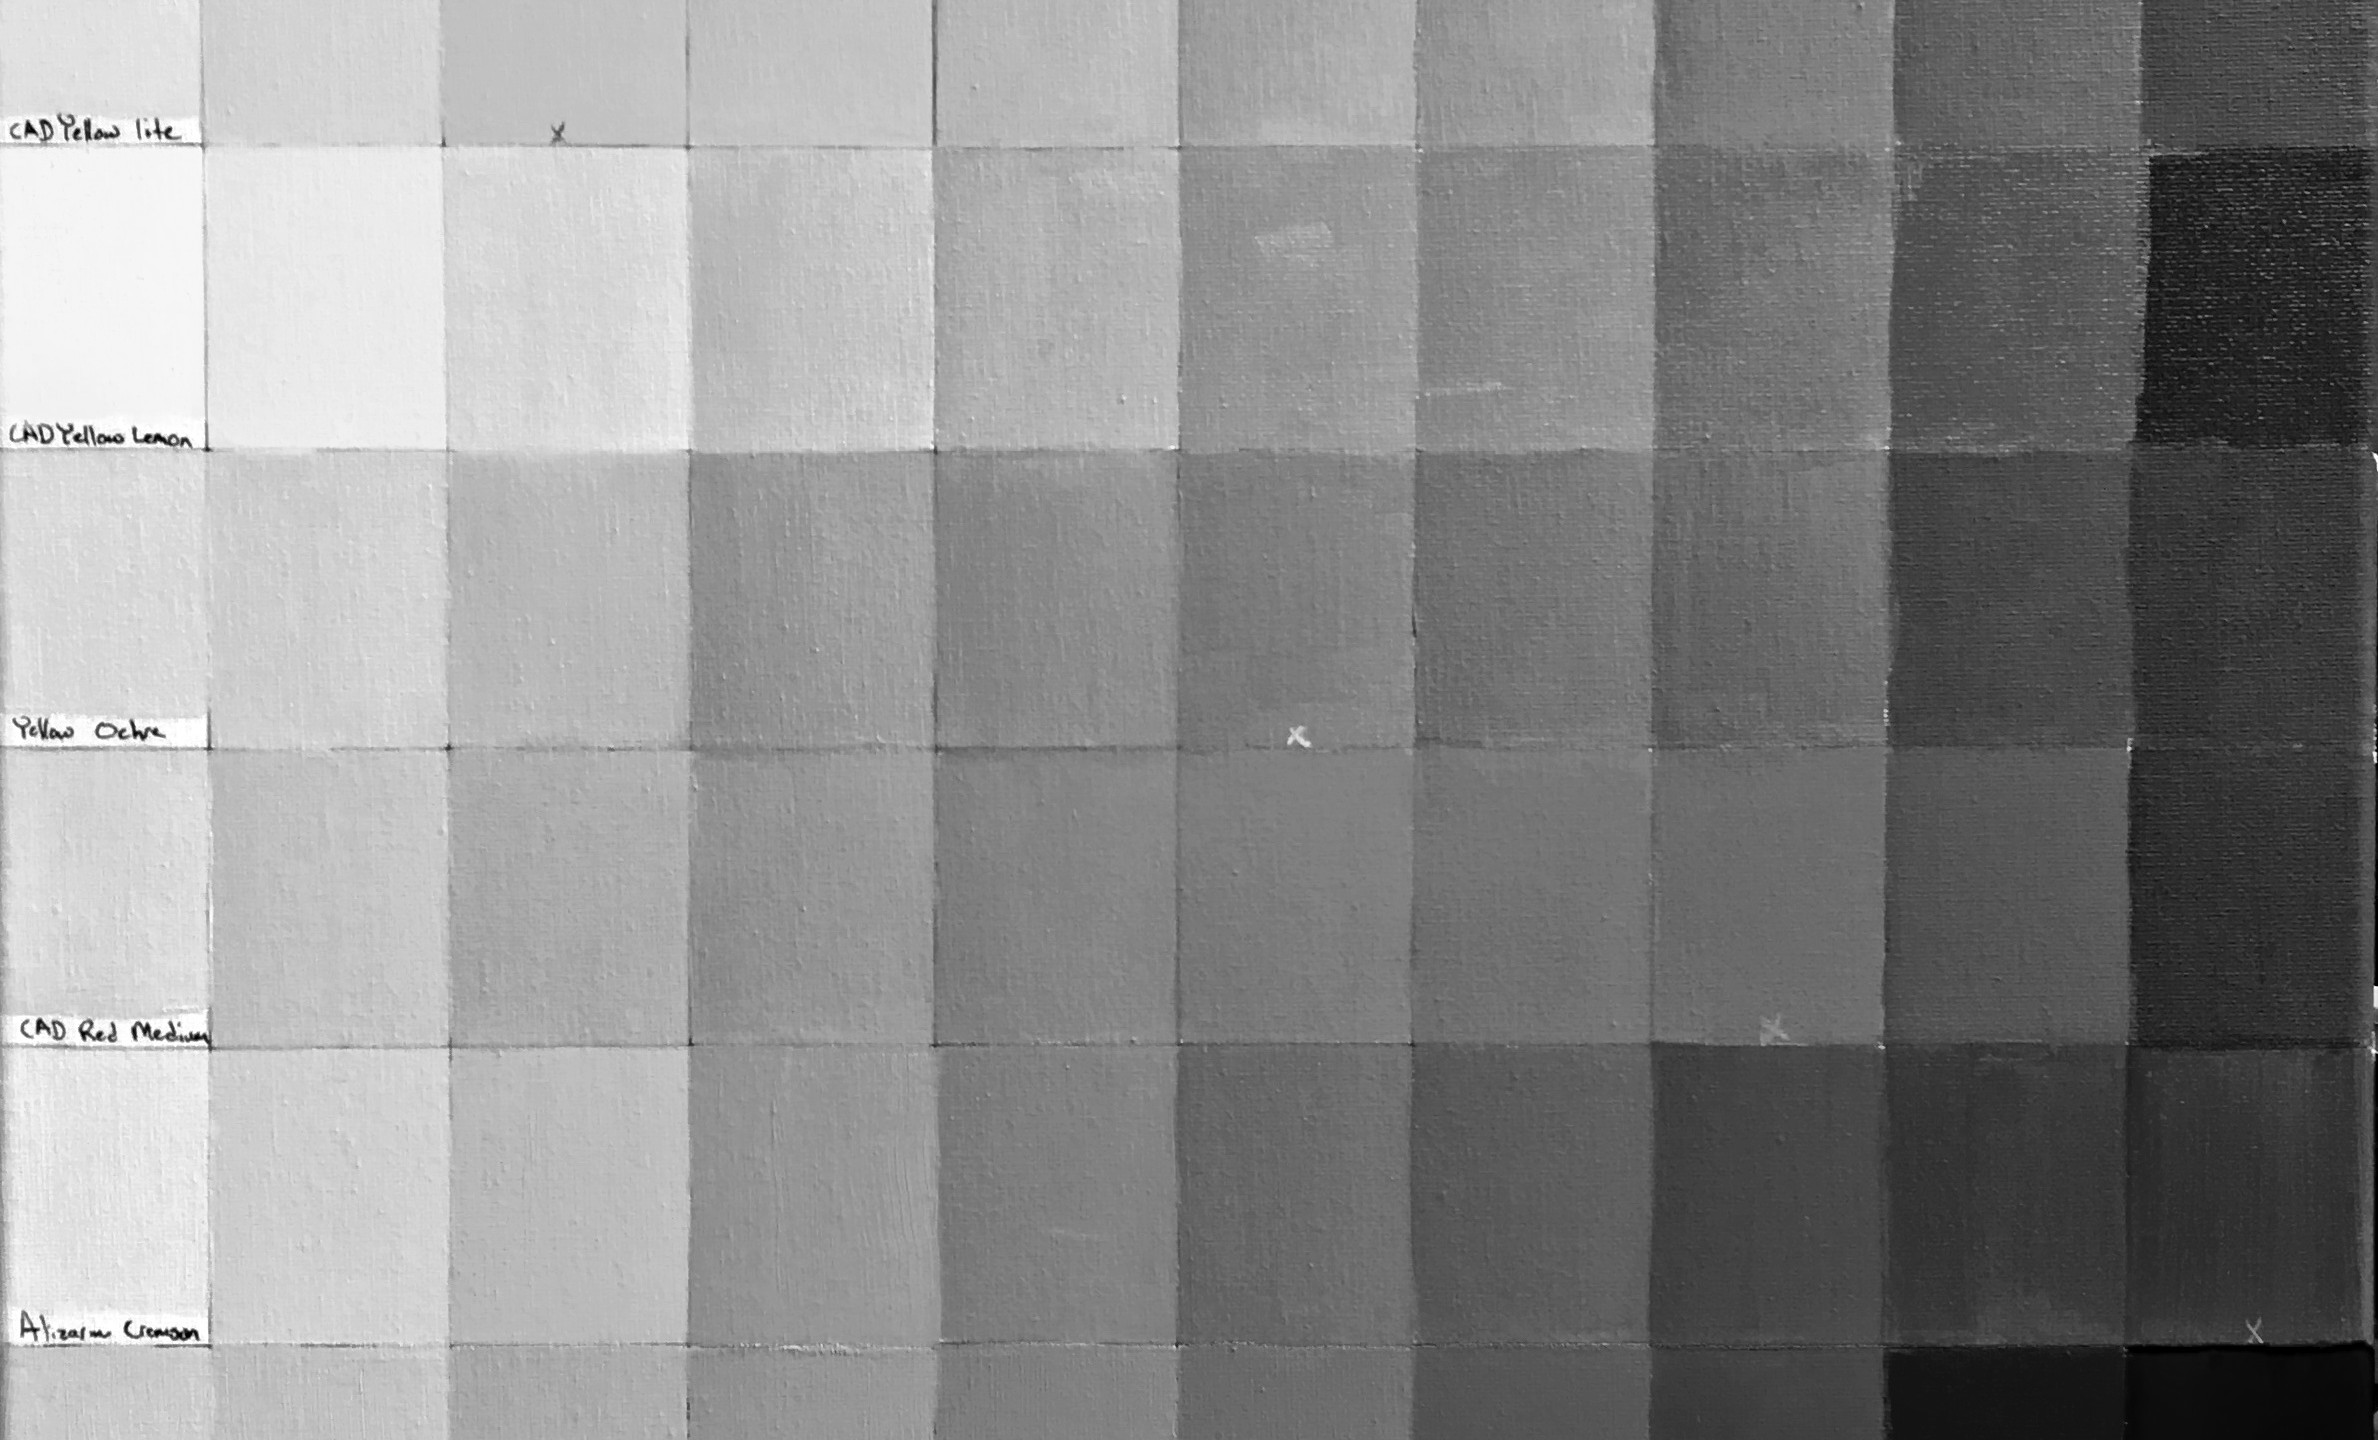 My Pallet in mono-black and white. Each column is technically the same value.